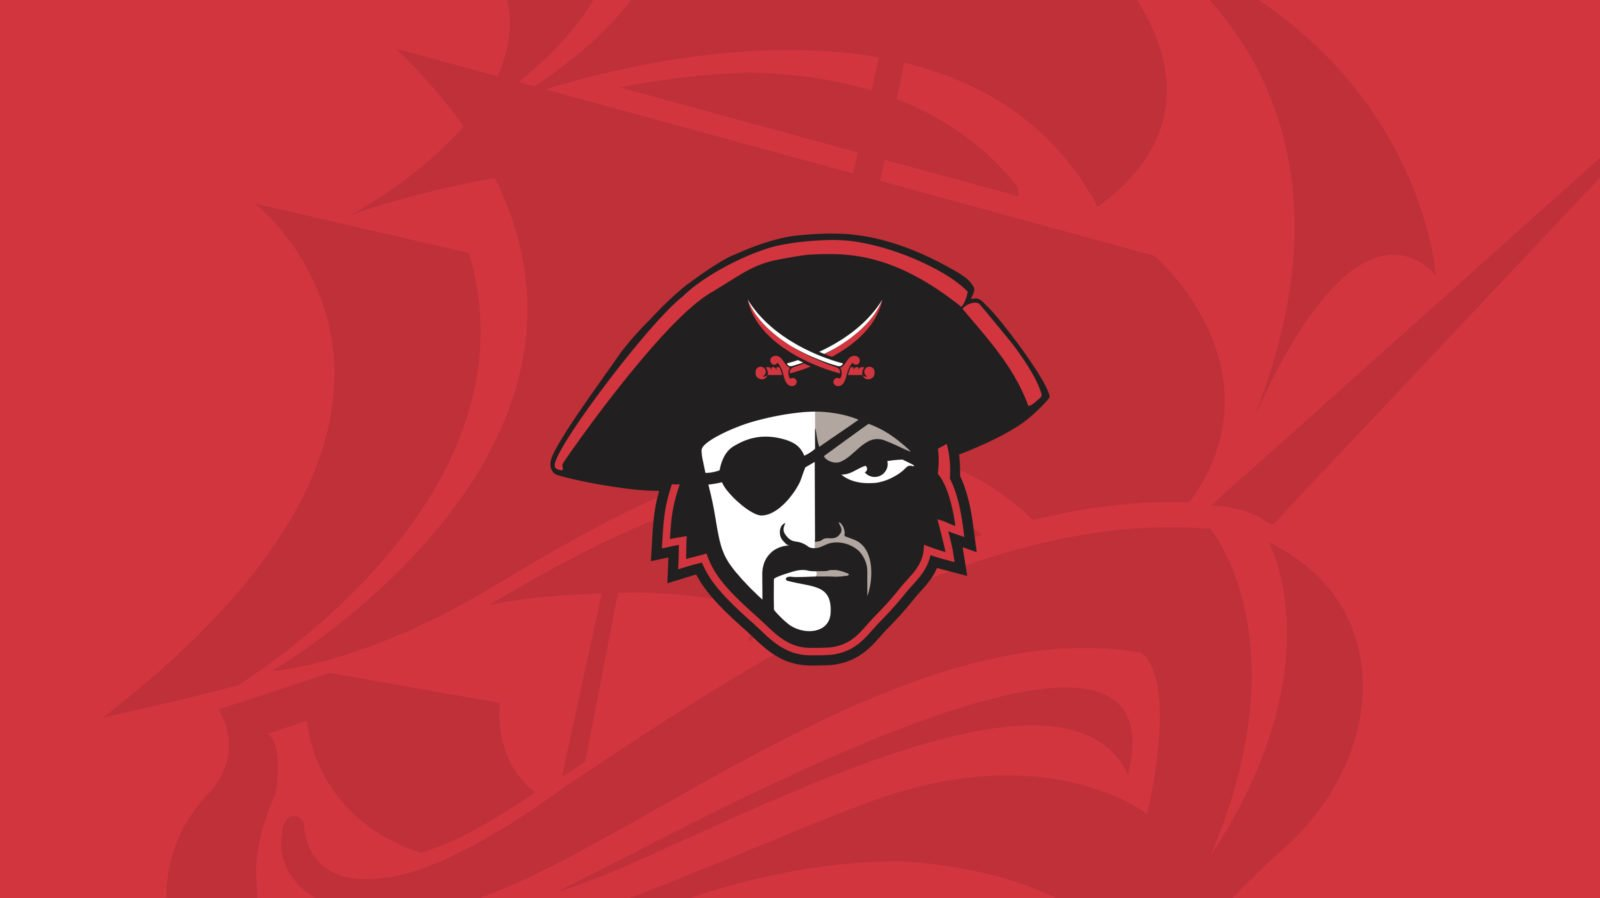 """Get Yours ""Bucs Treasure"" App"", CBU Newsletter"